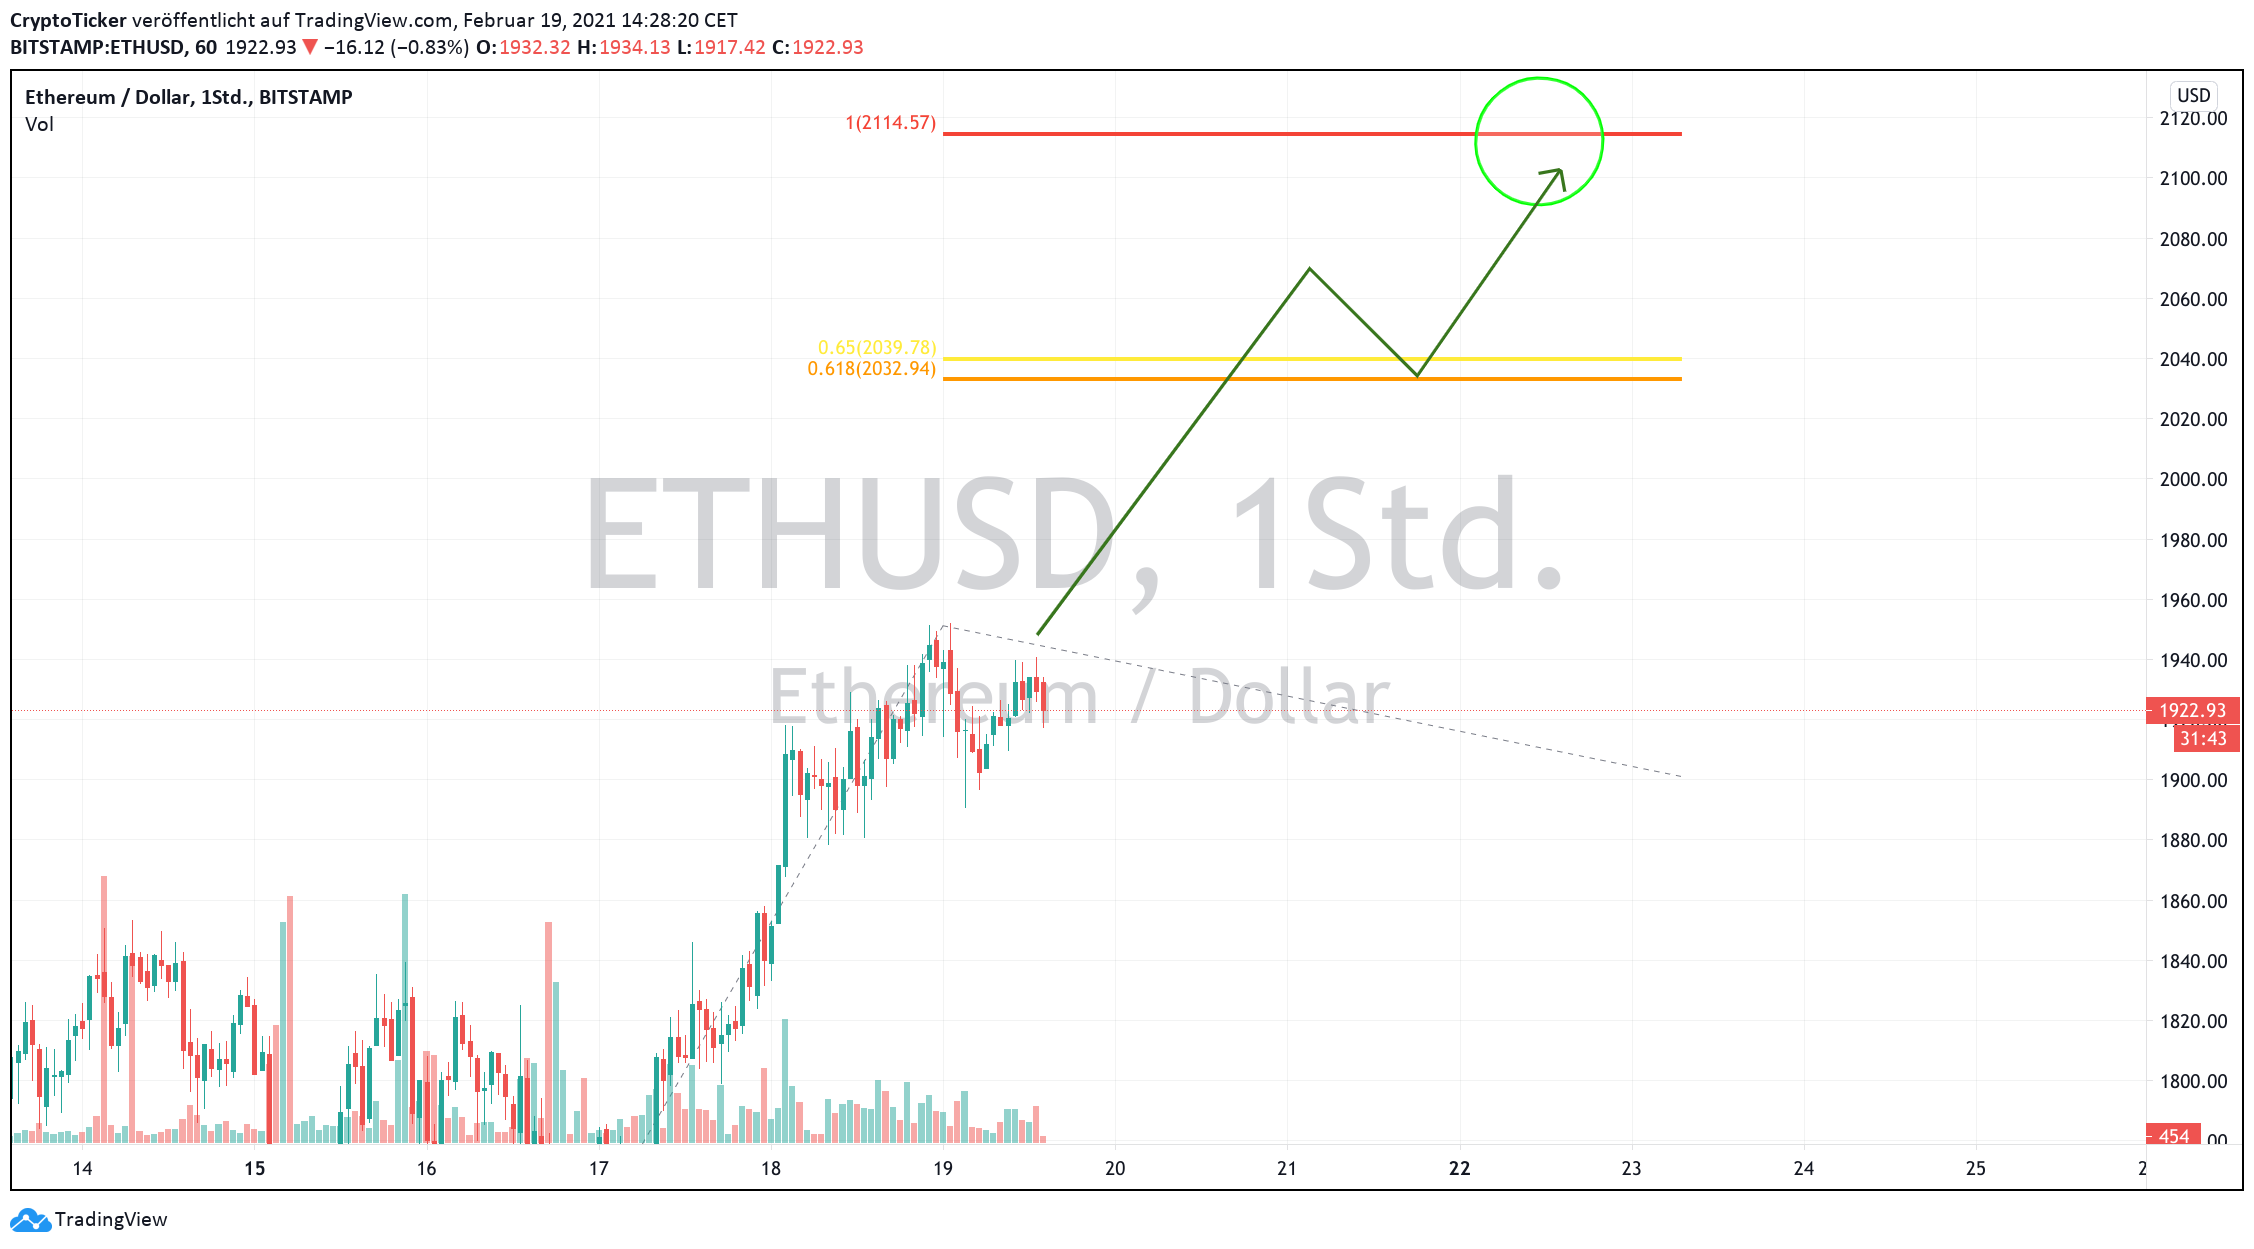 ETH/USD 1-Hour chart showing Ether's potential reach